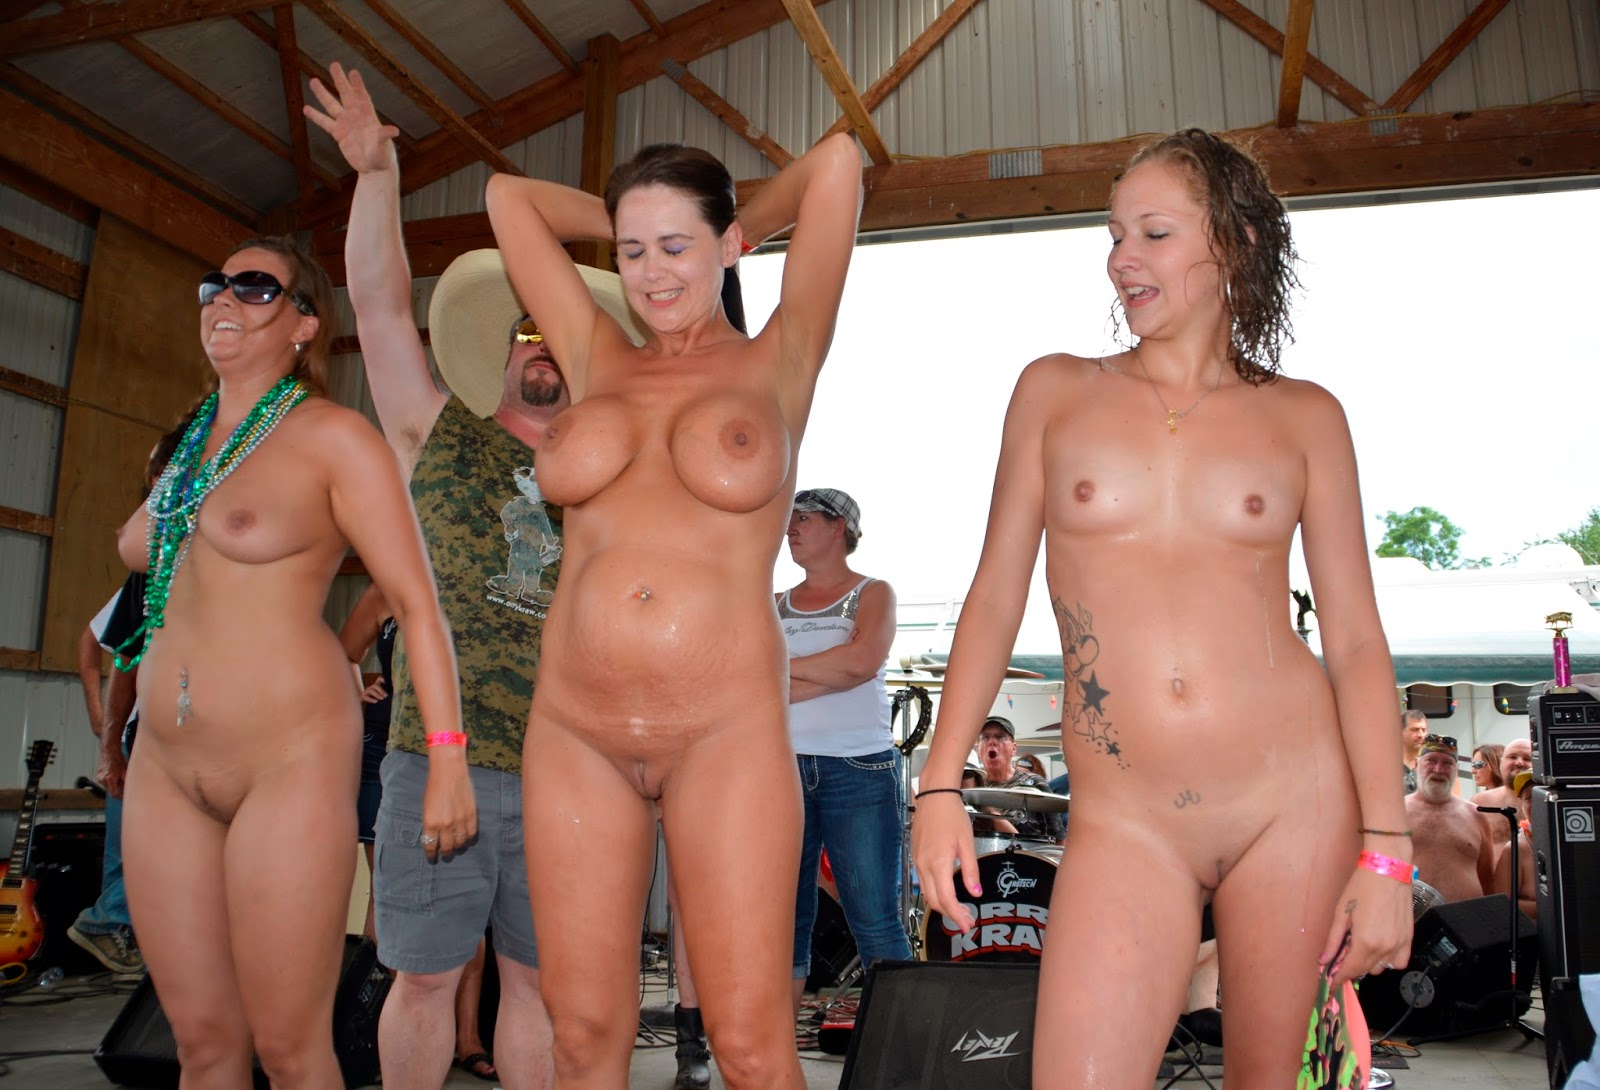 Nude picture at hog rock